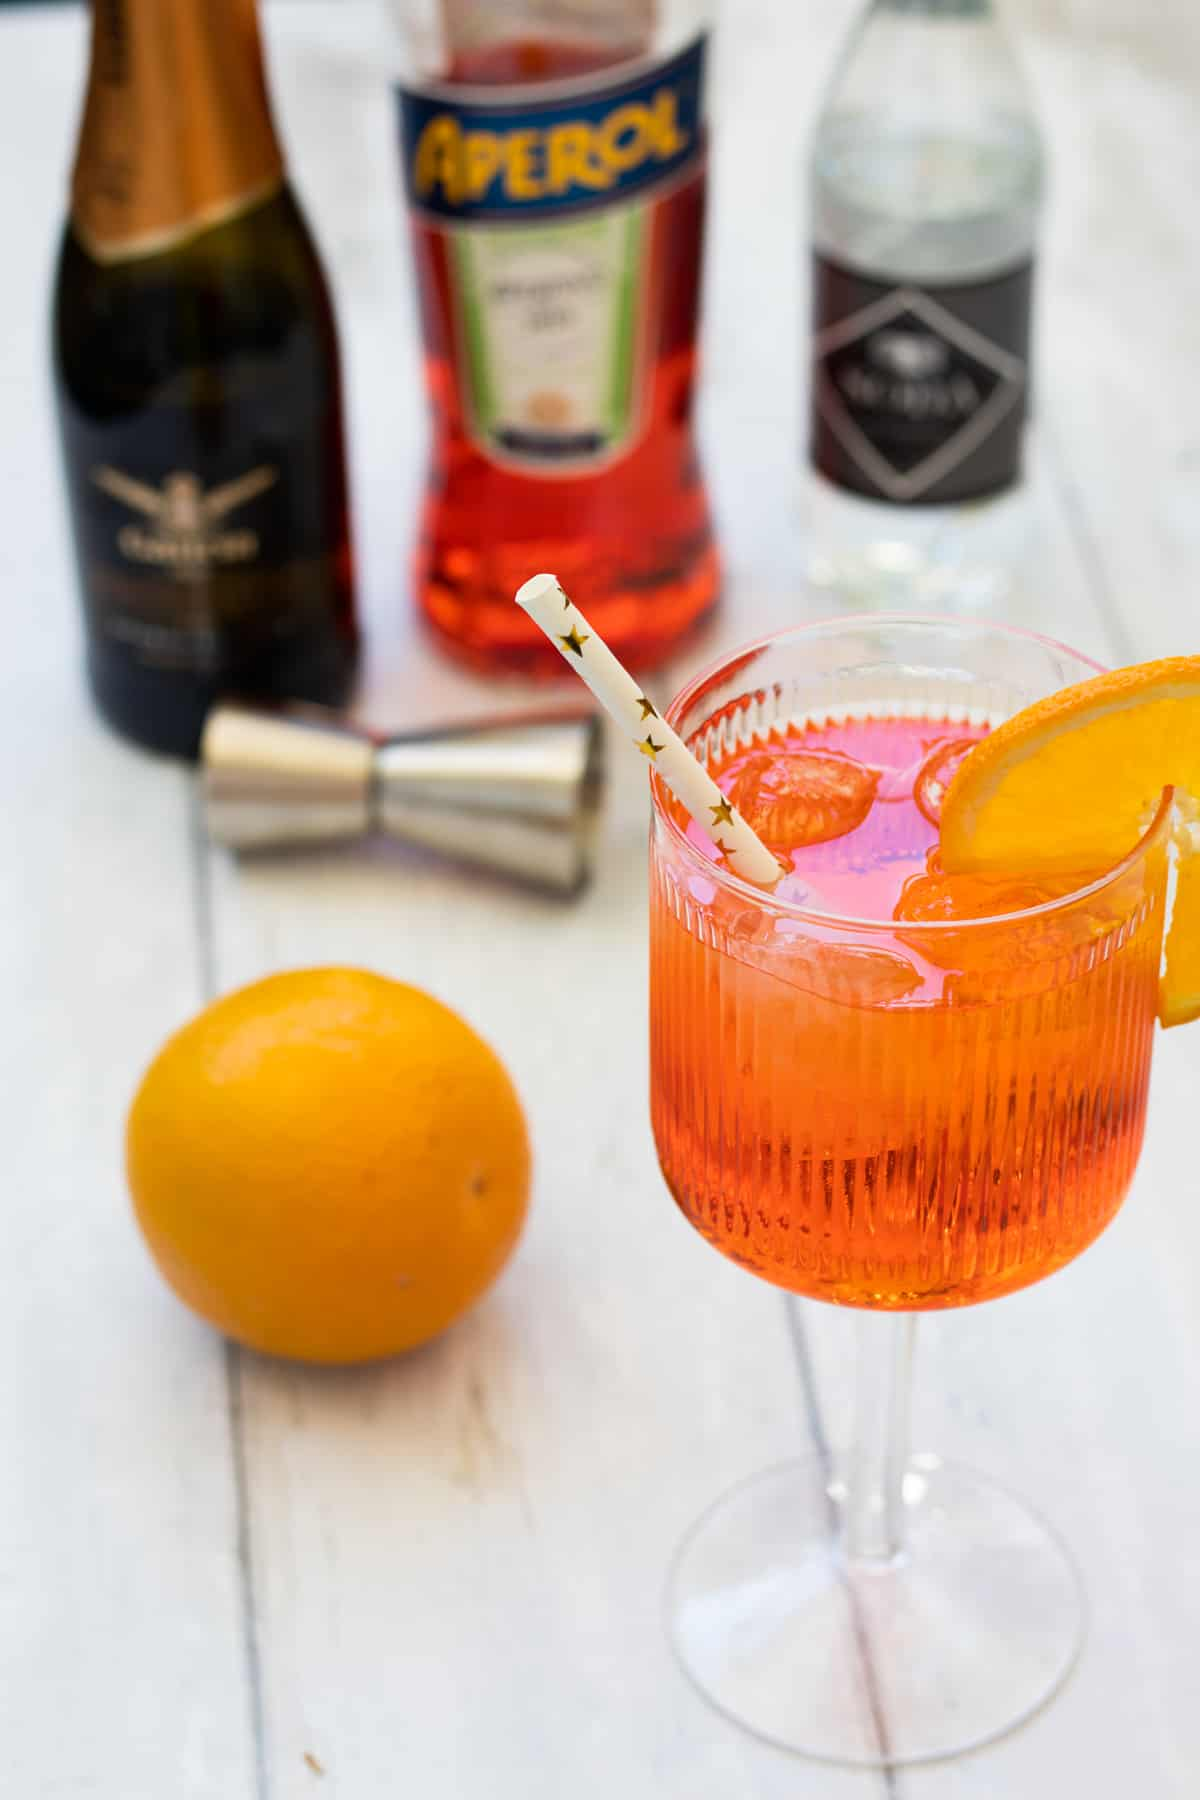 side view of an aperol spritz in front of bottles of prosecco, aperol and soda water and an orange